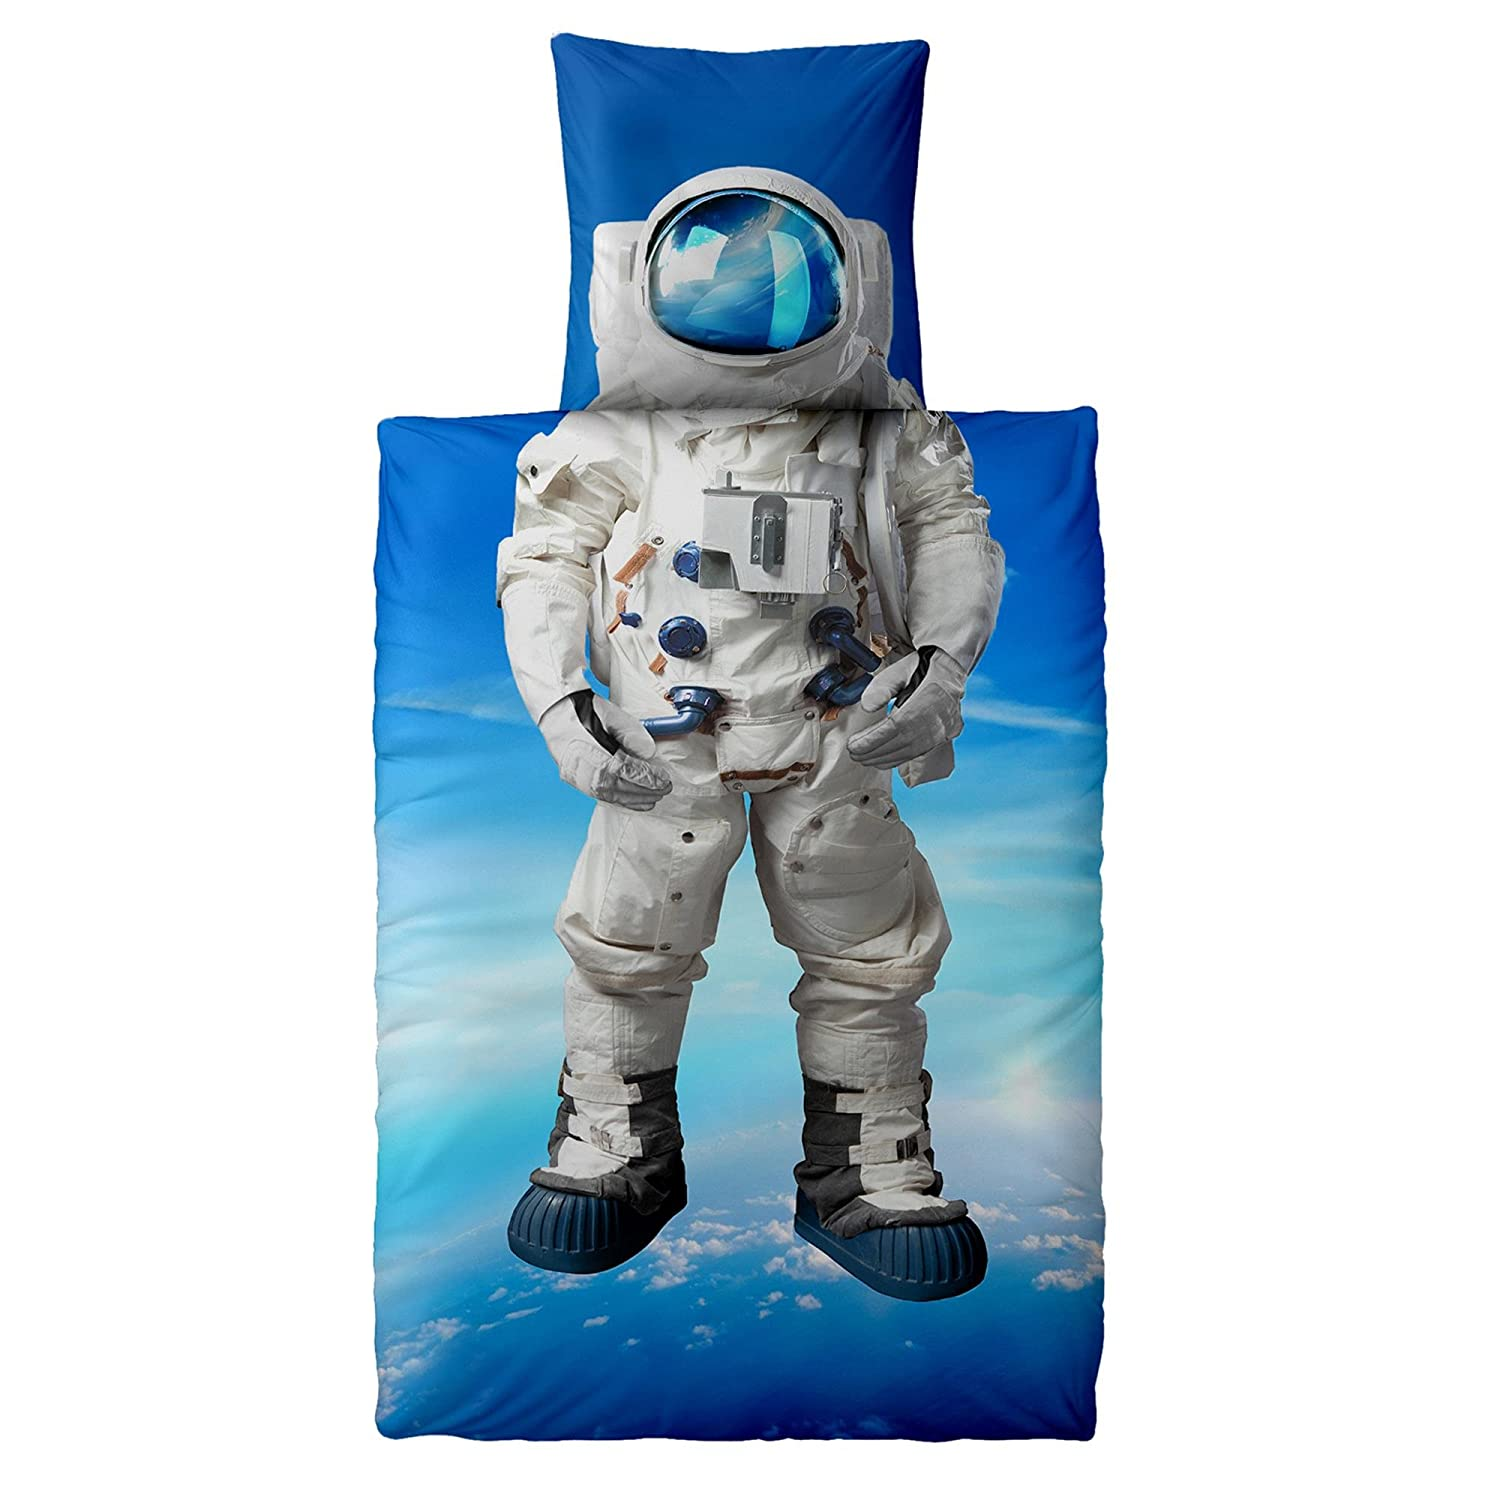 bettw sche astronaut my blog. Black Bedroom Furniture Sets. Home Design Ideas